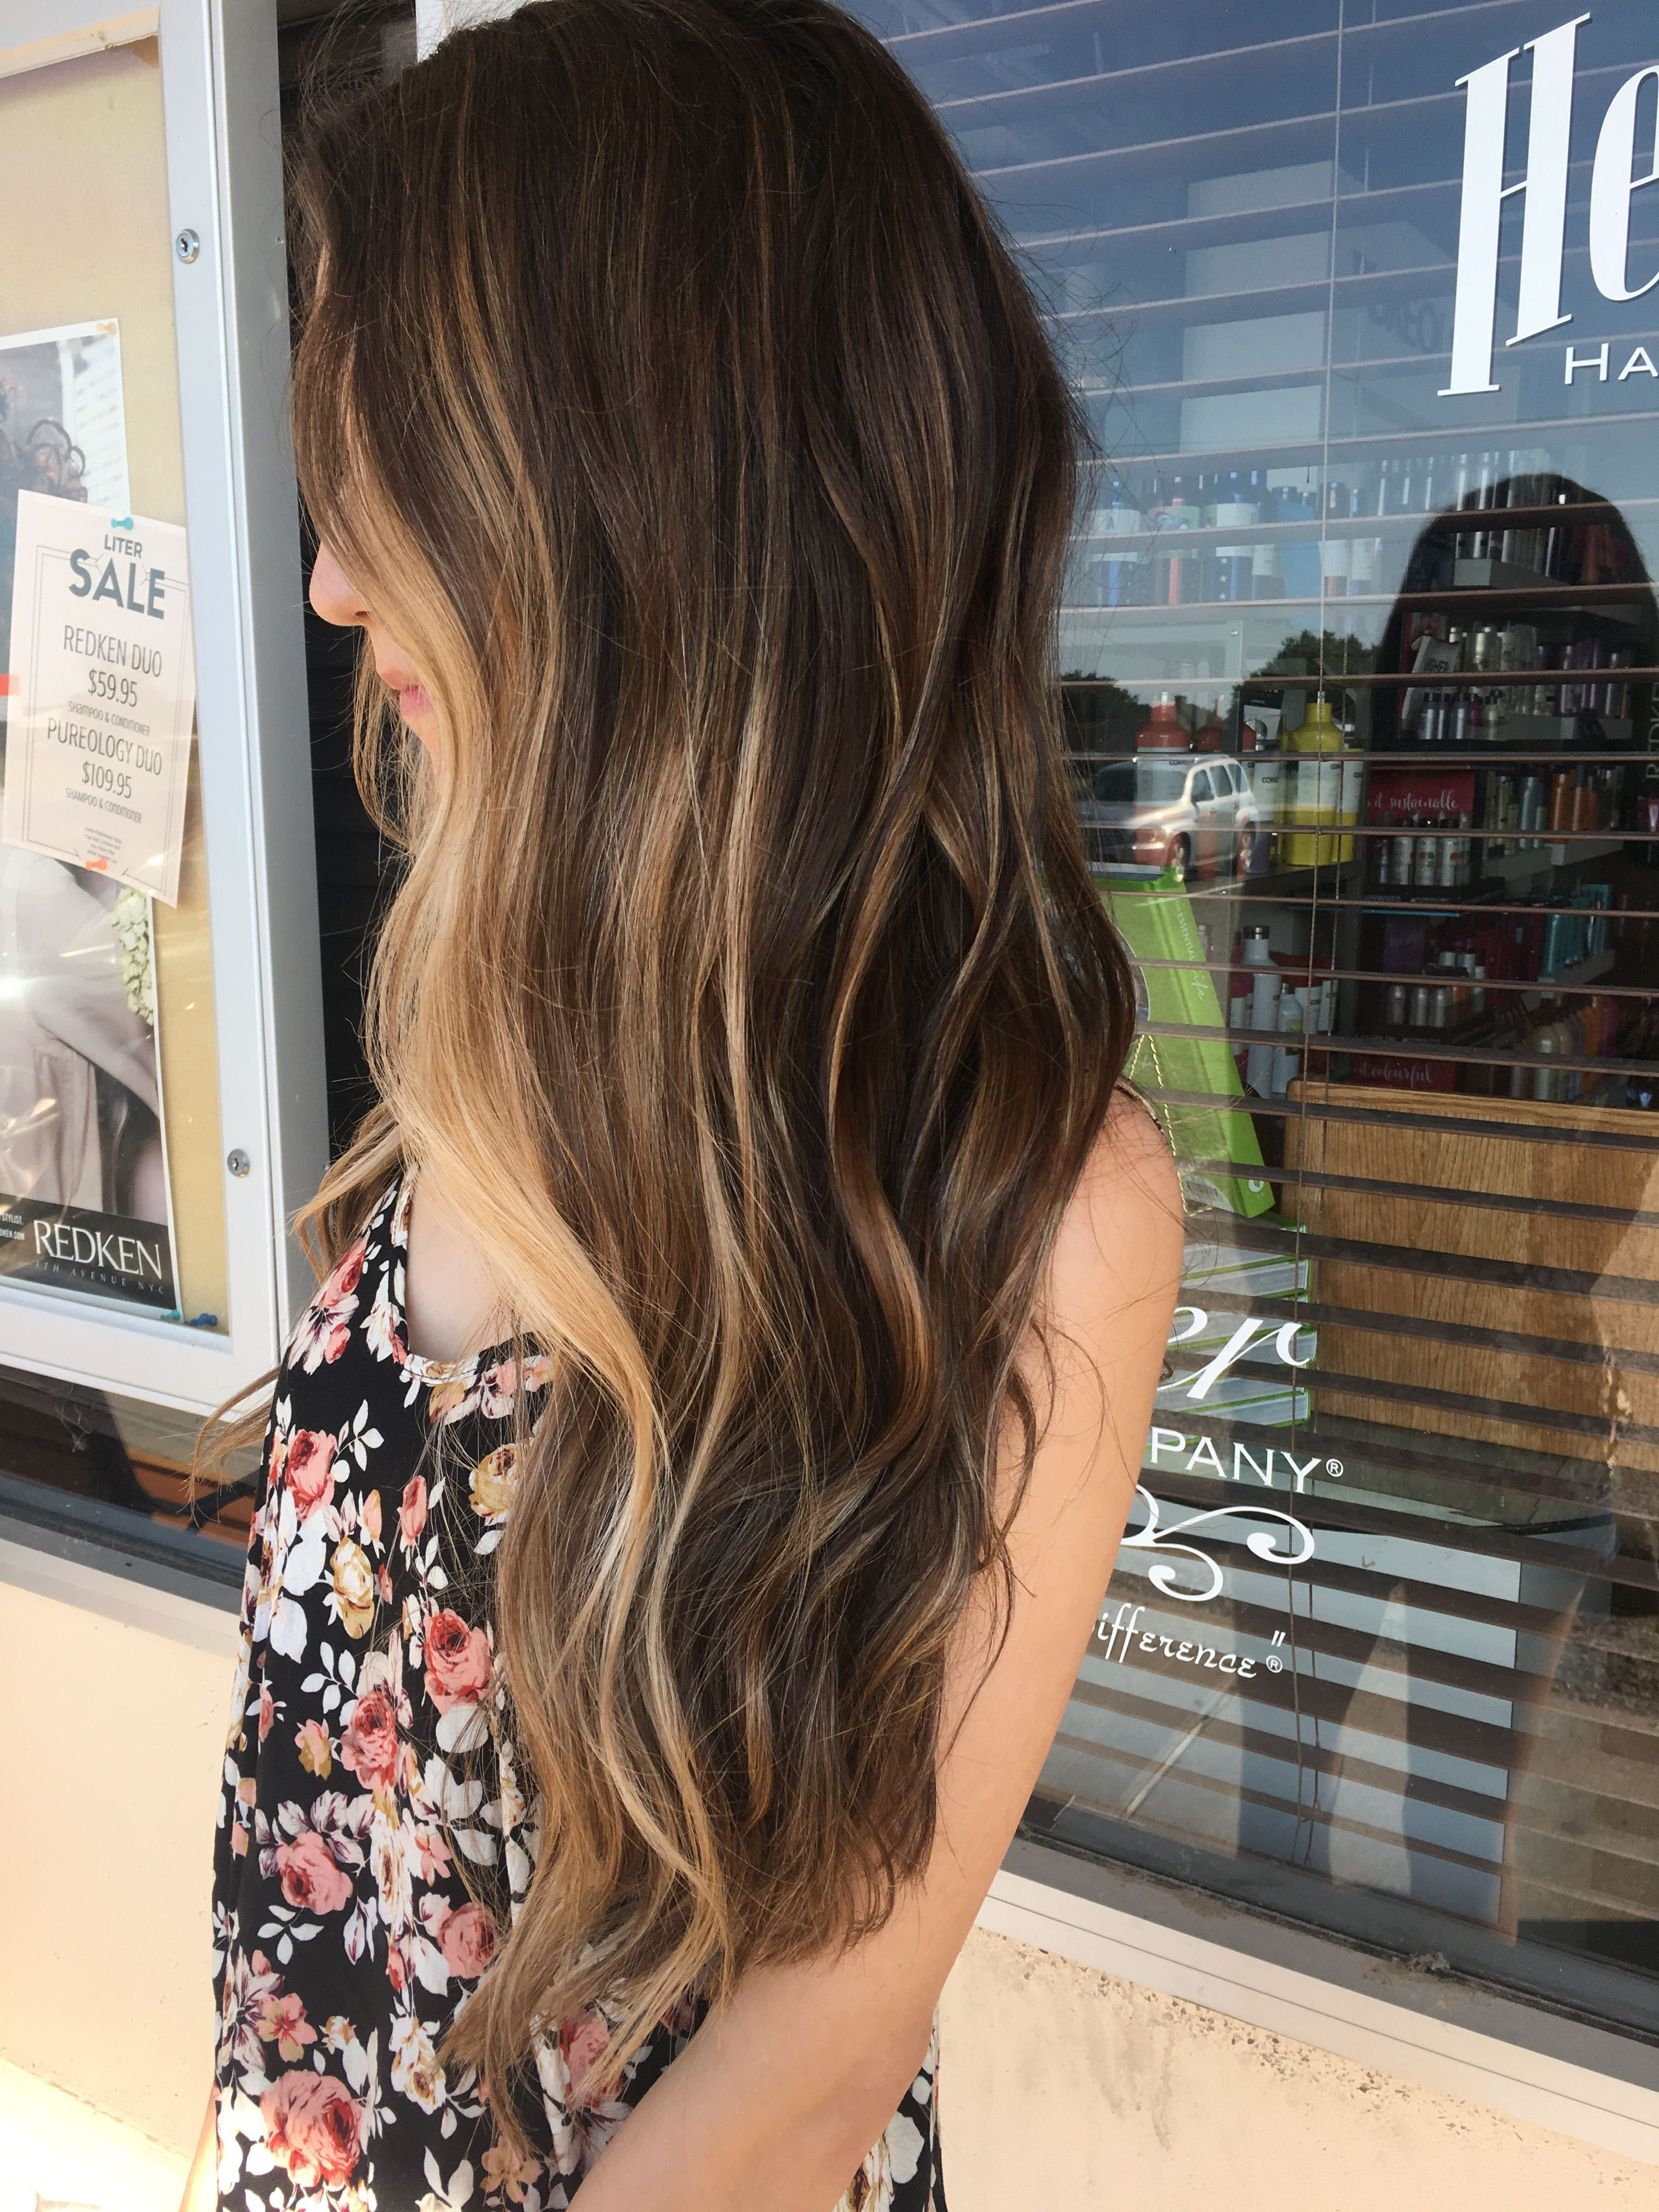 Gorgeous Long Wavy Brown Hair With Blonde Balayage Highlights Fall